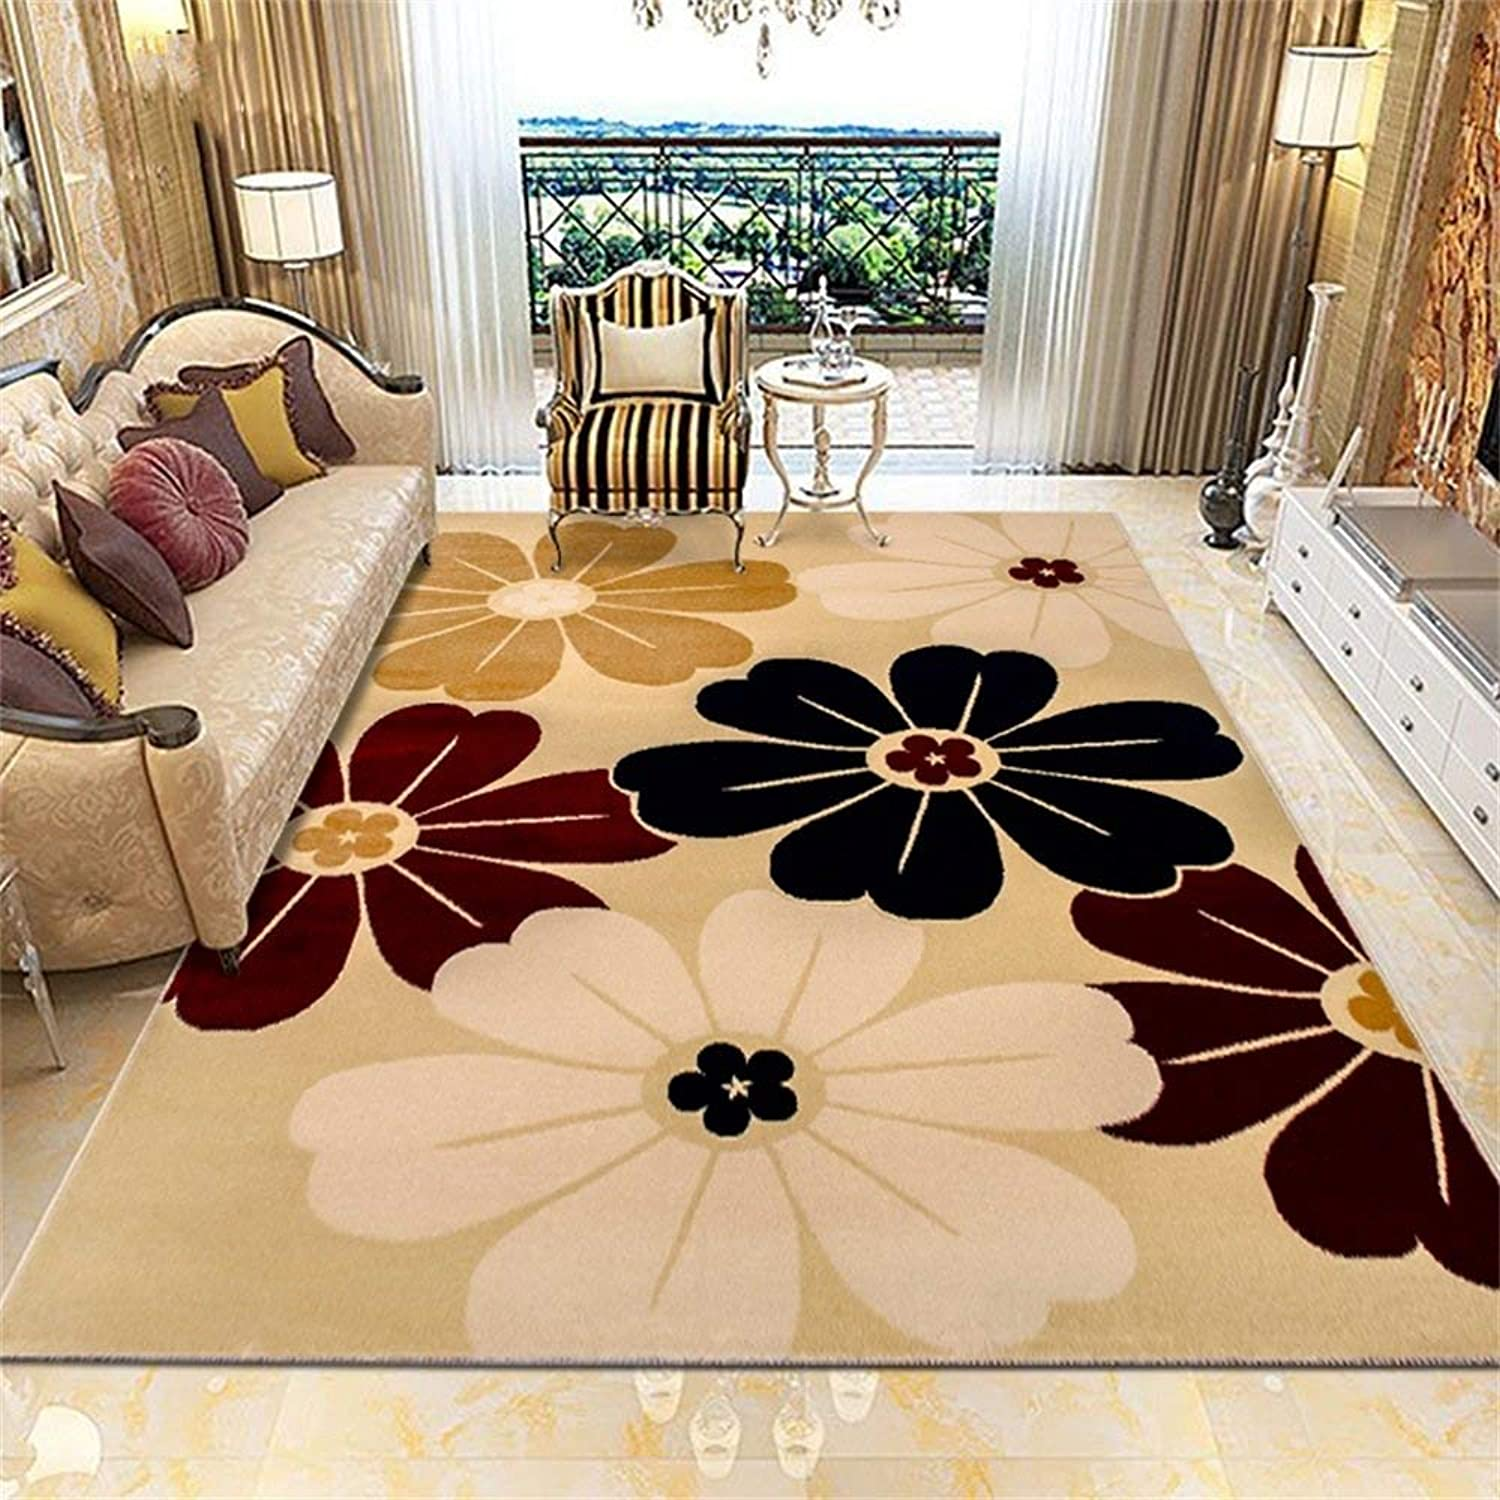 Royare Home Decorations mat Fashion Area Rugs and Living Room Mat Designer Rug Modern Minimalist Living Room Coffee Table Sofa Bed Bedroom Big Carpet Swivel Chair pad (color    1, Size   120  170cm)